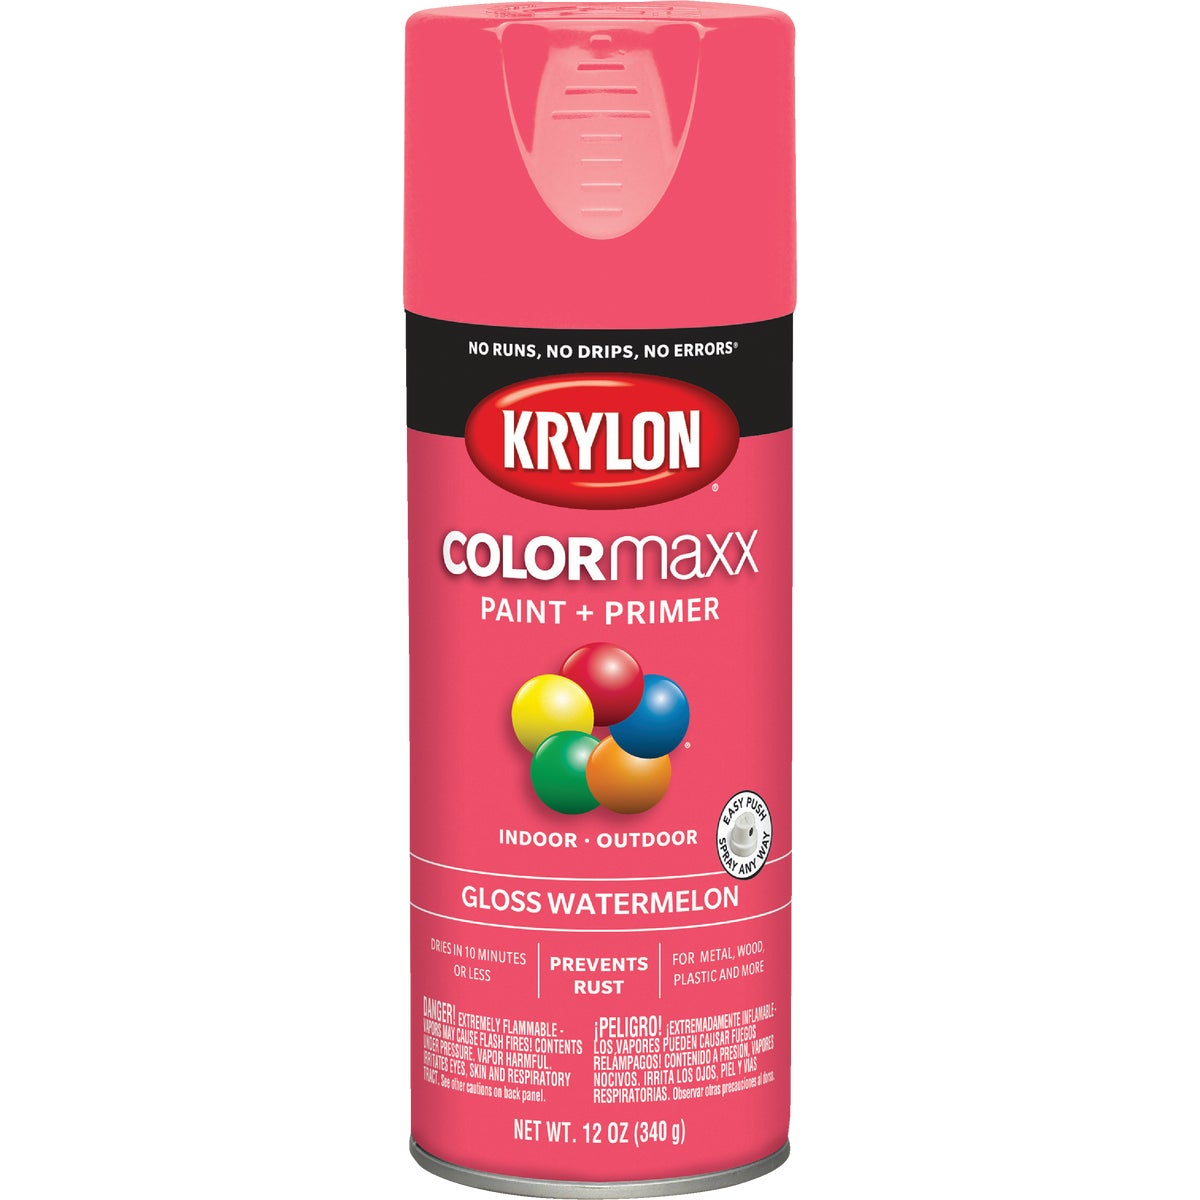 GLS WTRMELON SPRAY PAINT - 53533 by Krylon/consumer Div